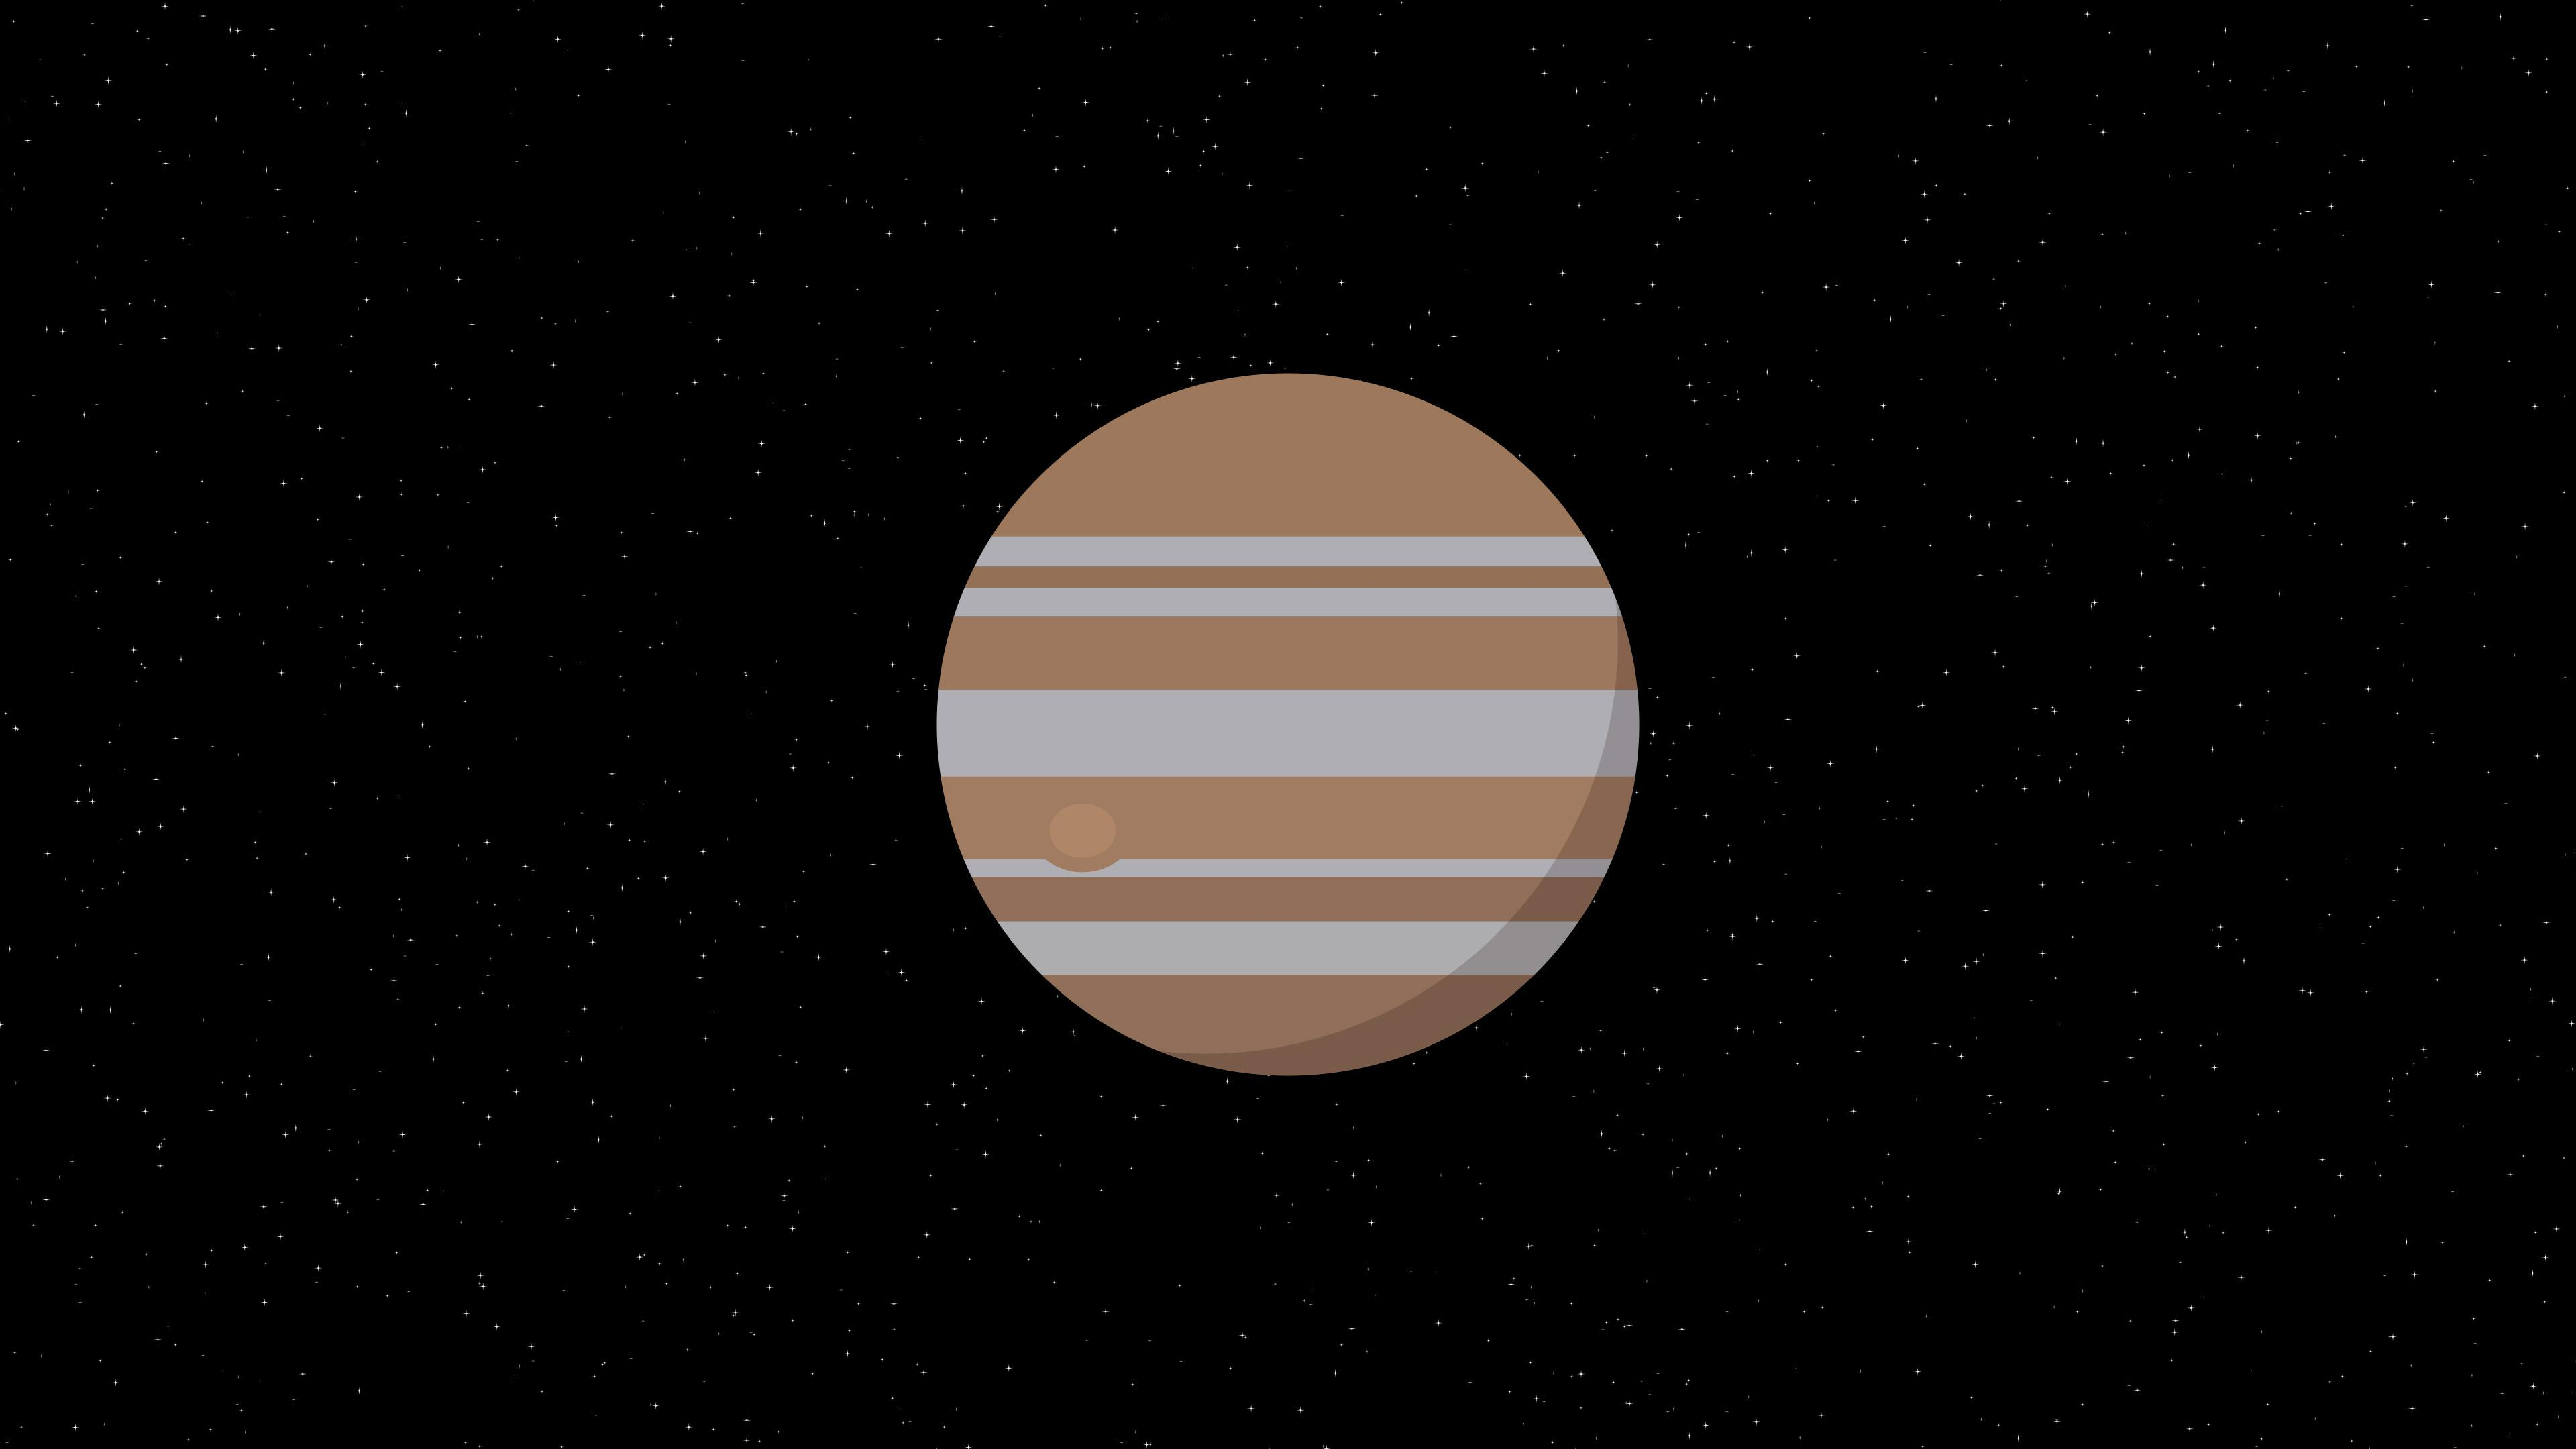 Jupiter Planet Minimalism 4k, HD Artist, 4k Wallpapers, Image